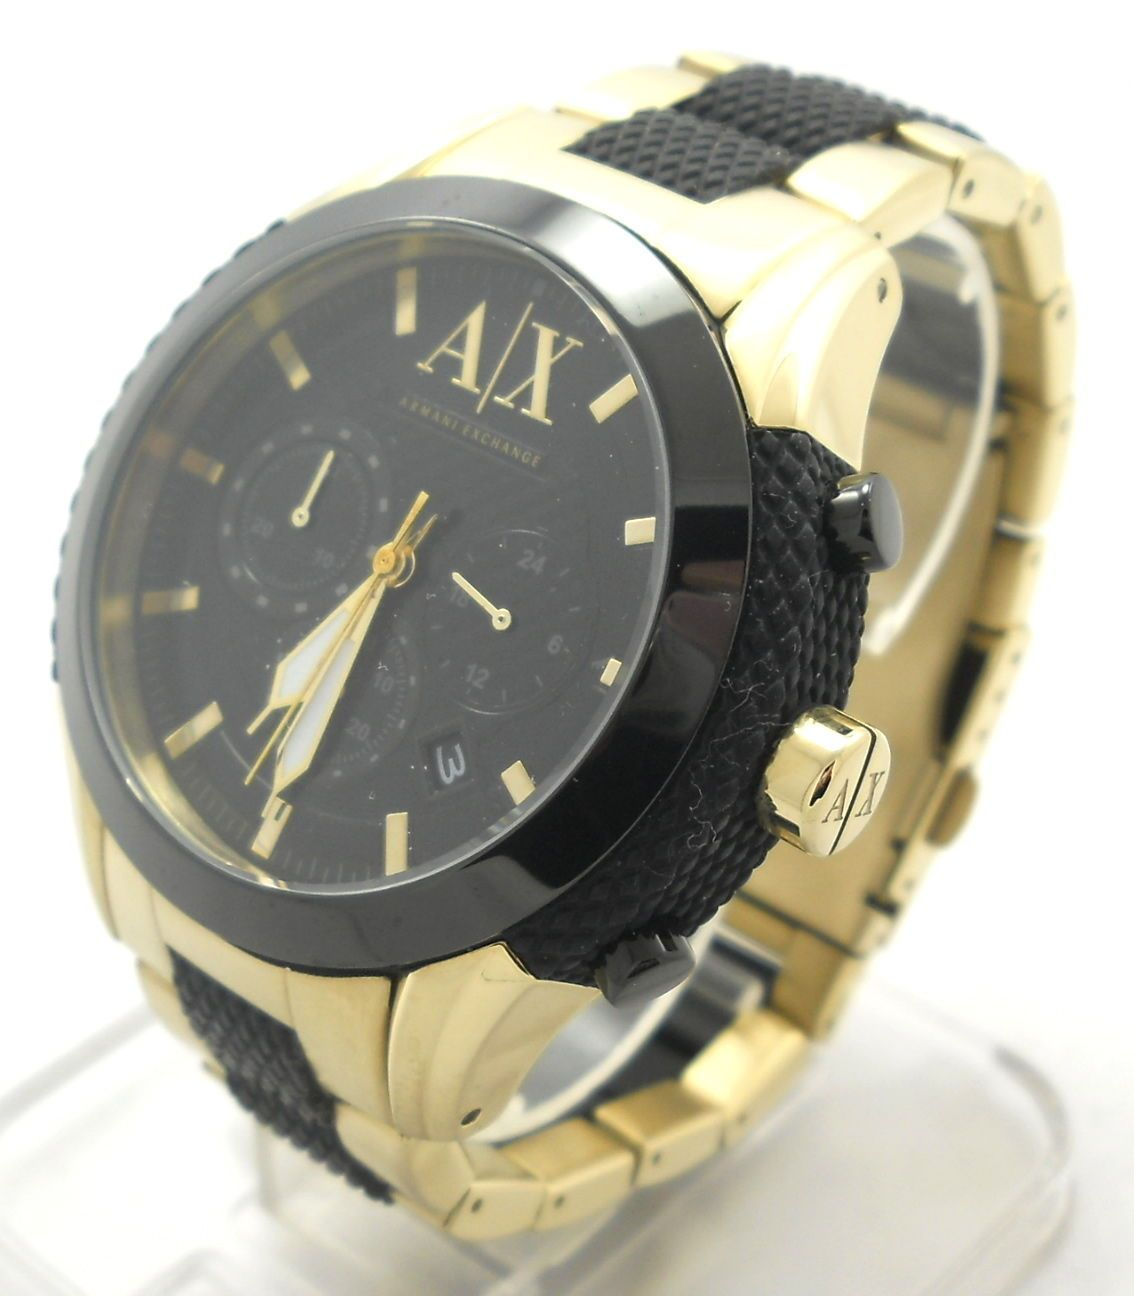 armani exchange watch men s pre owned gold black stainless armani exchange watch men s pre owned gold black stainless steel quartz ax designer